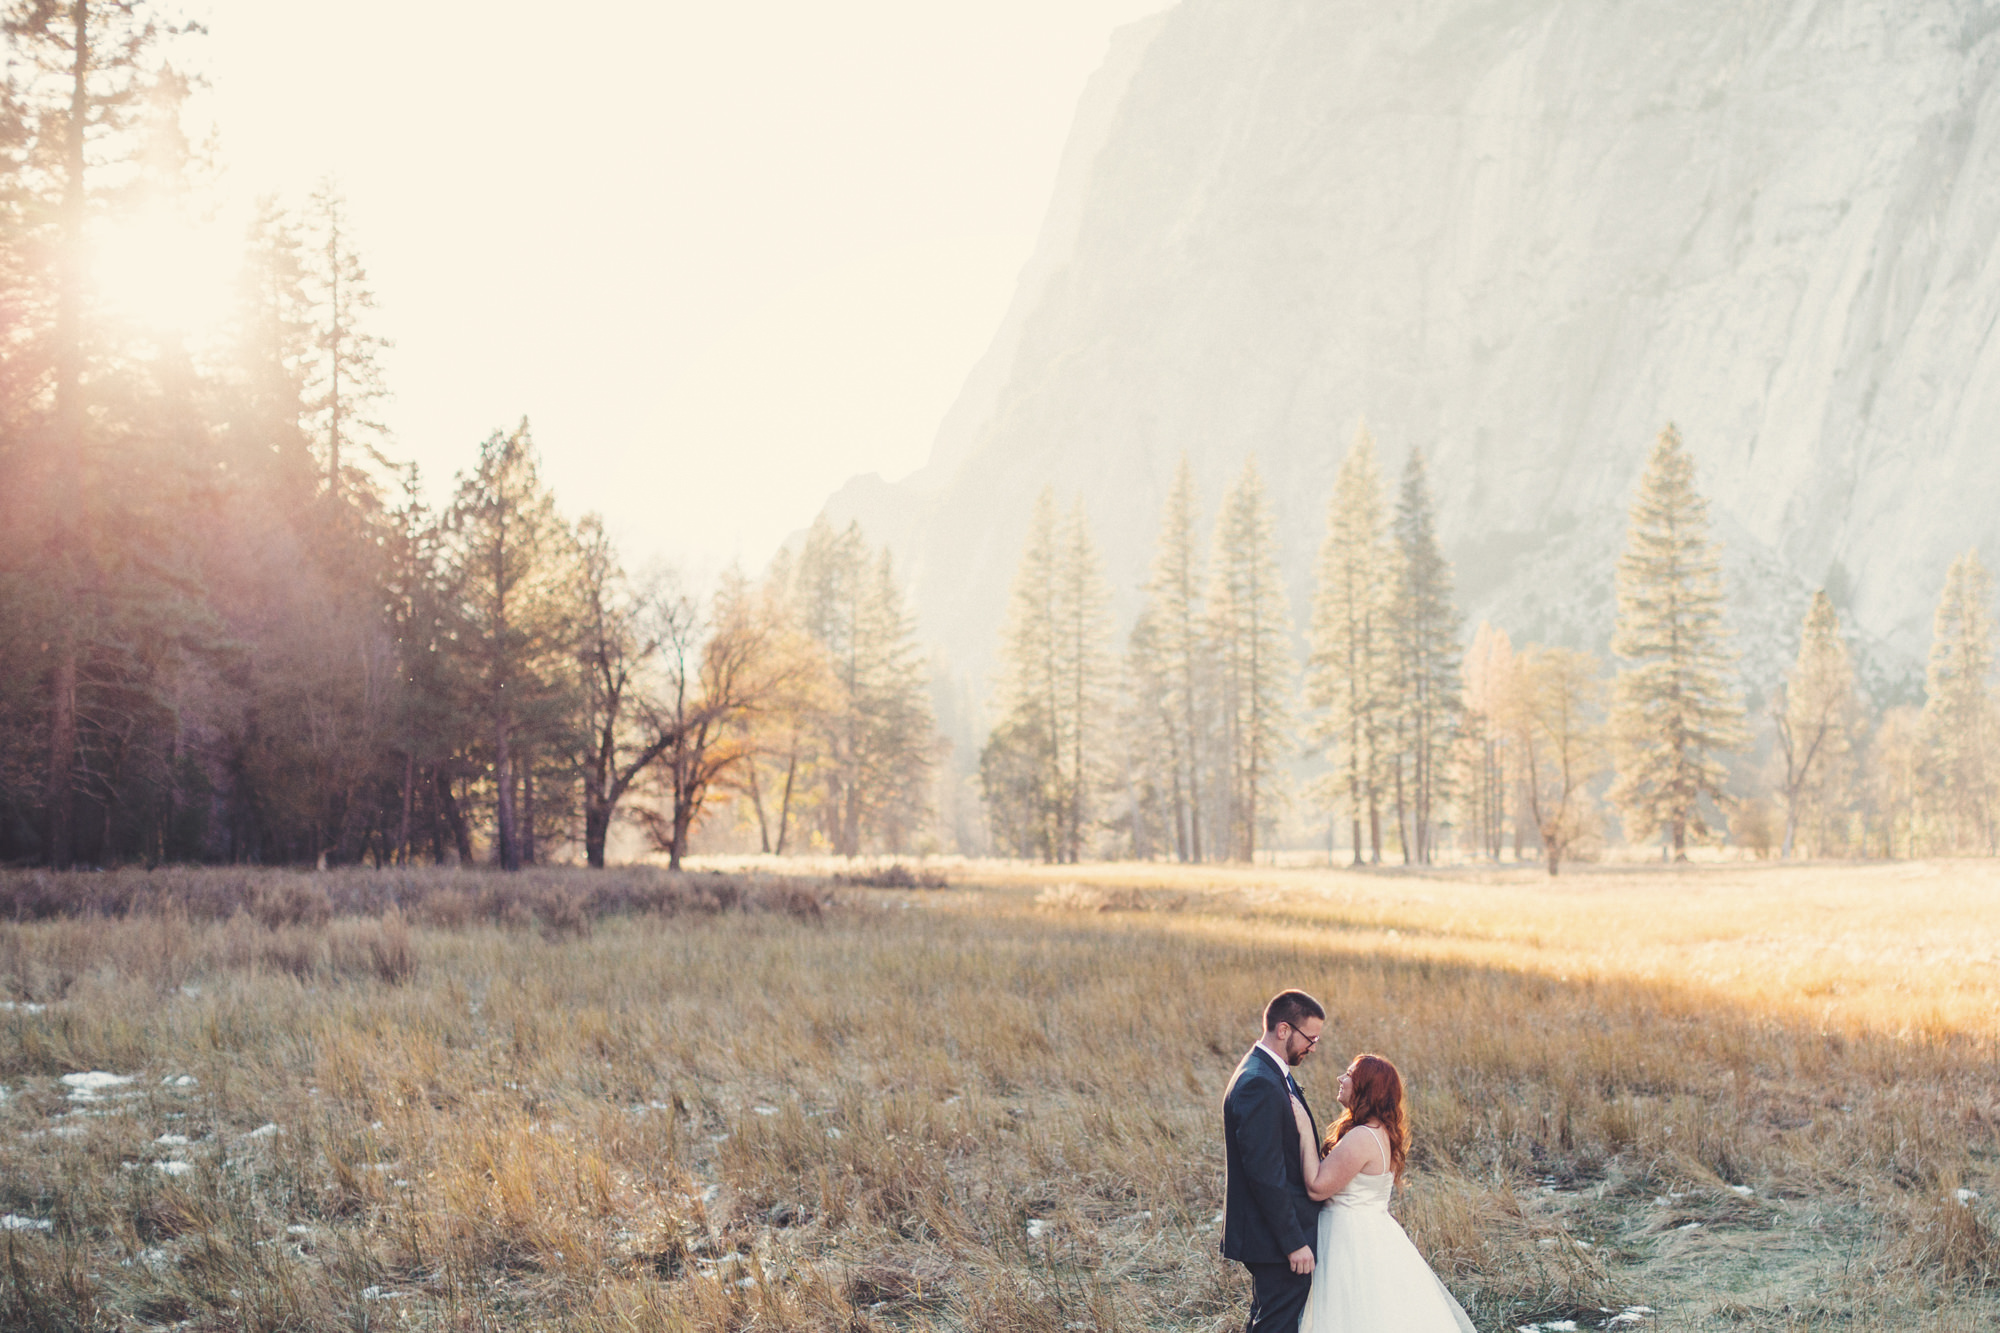 Yosemite wedding ©Anne-Claire Brun 106